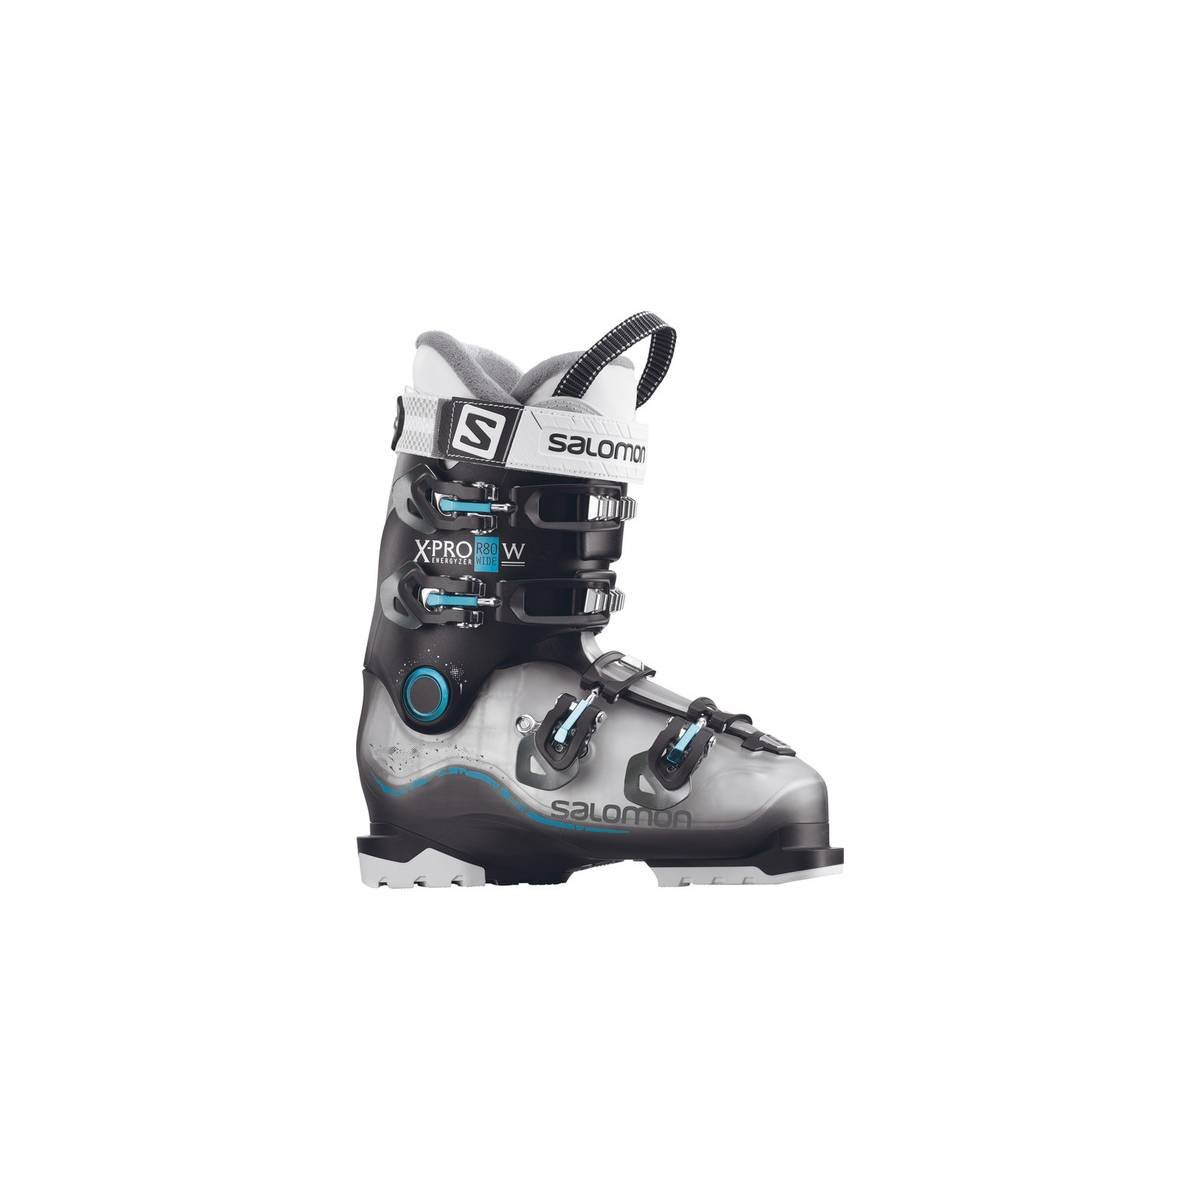 a0e2b9cc Salomon X Pro R80 Wide, 80 W Wide Anthr Tra: Amazon.co.uk ...